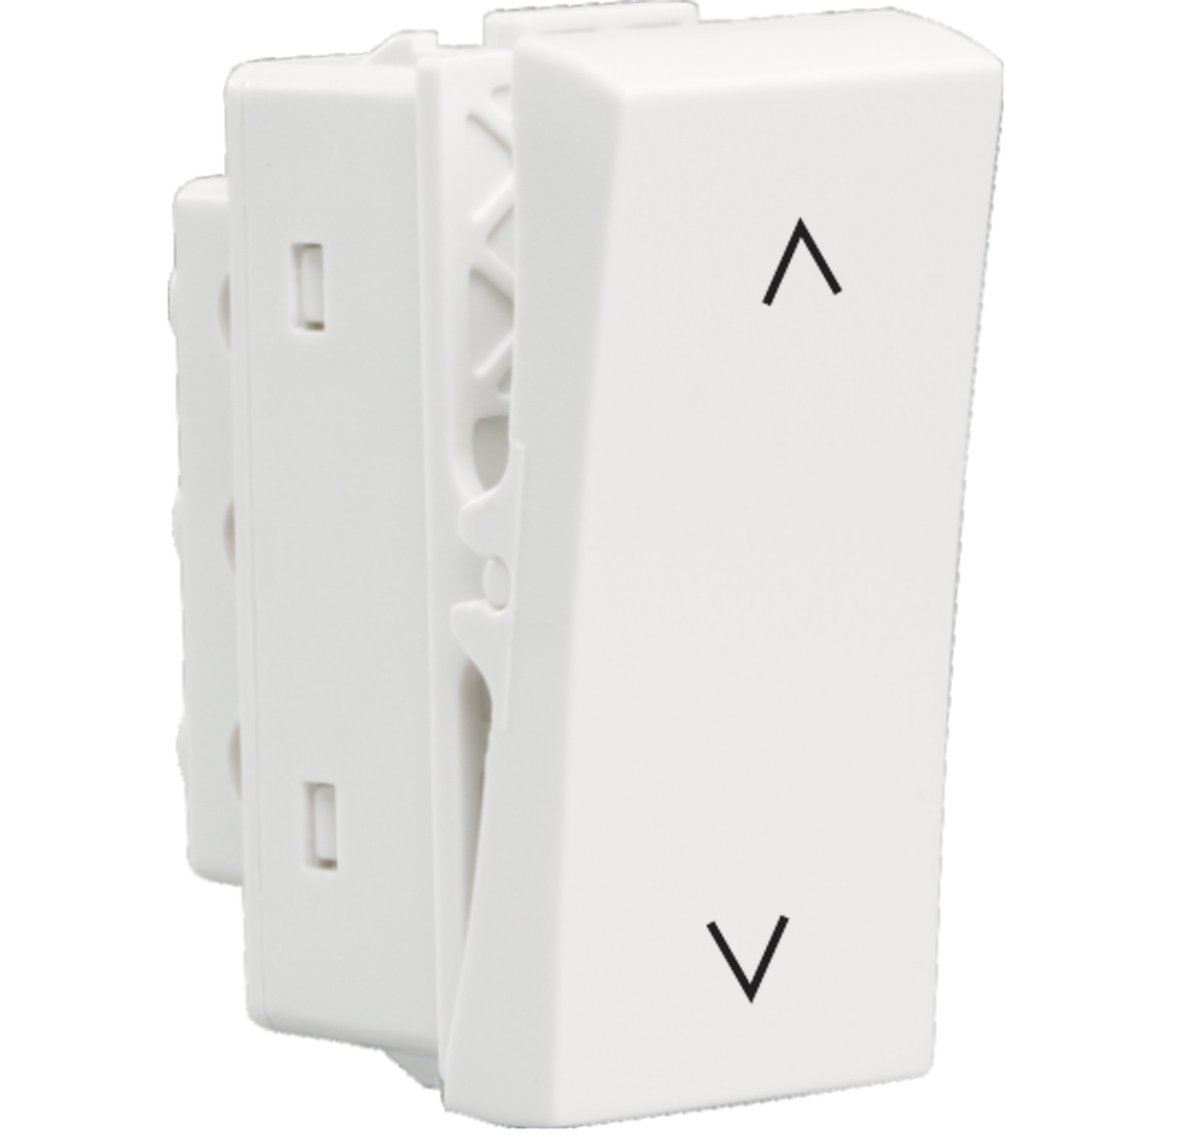 Crabtree - 16 AX two way switch